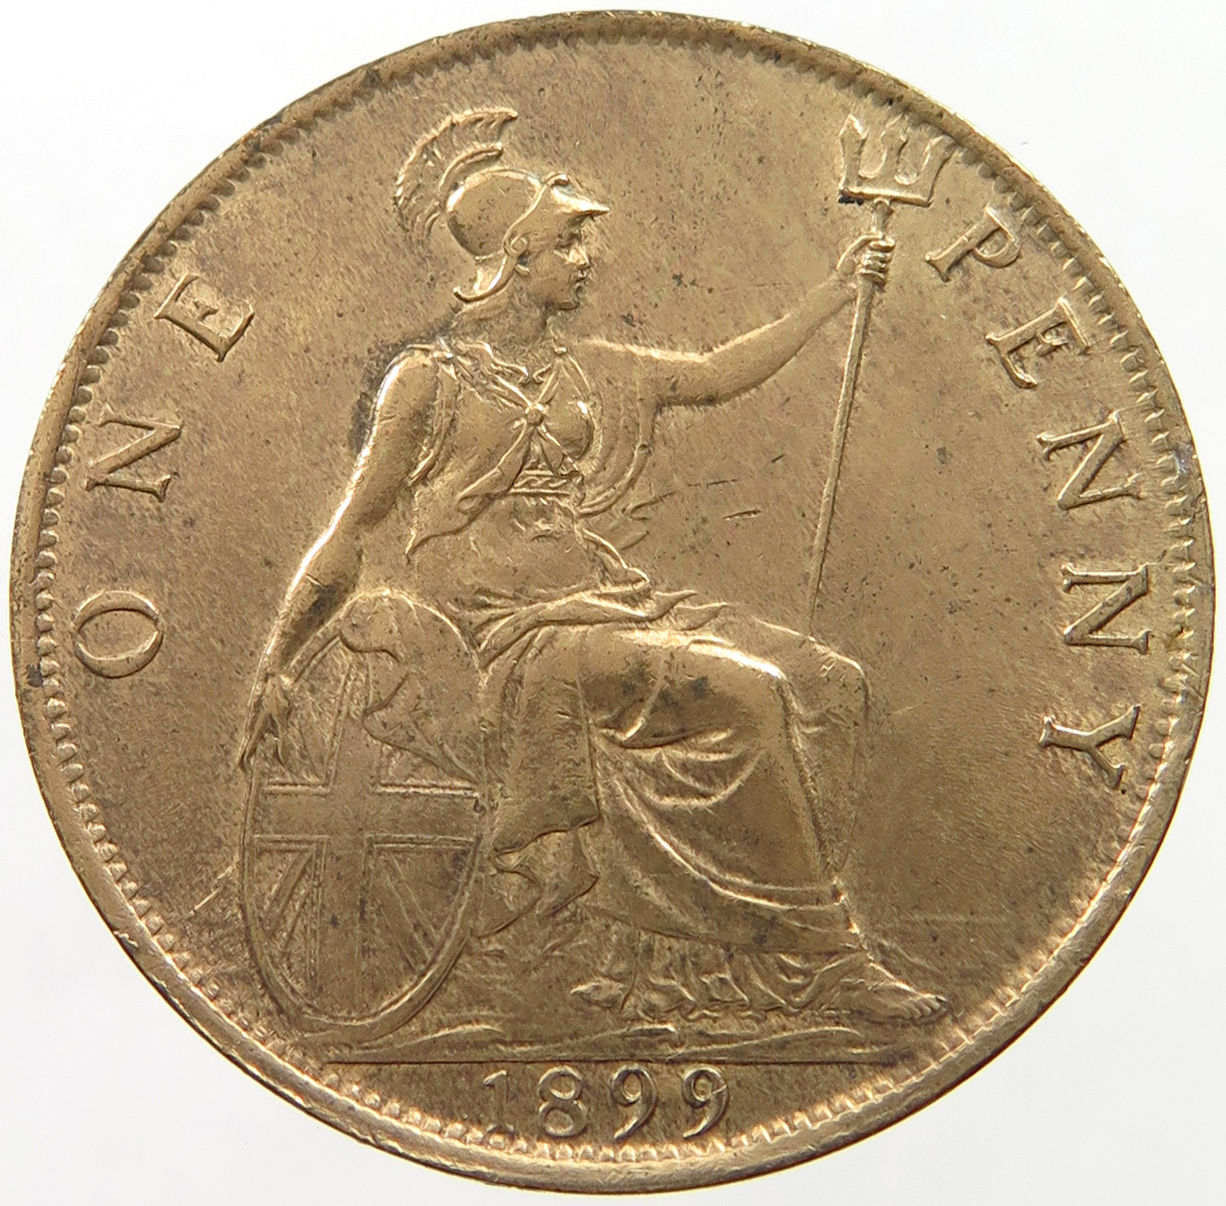 Penny 1899: Photo Great Britain Penny 1899